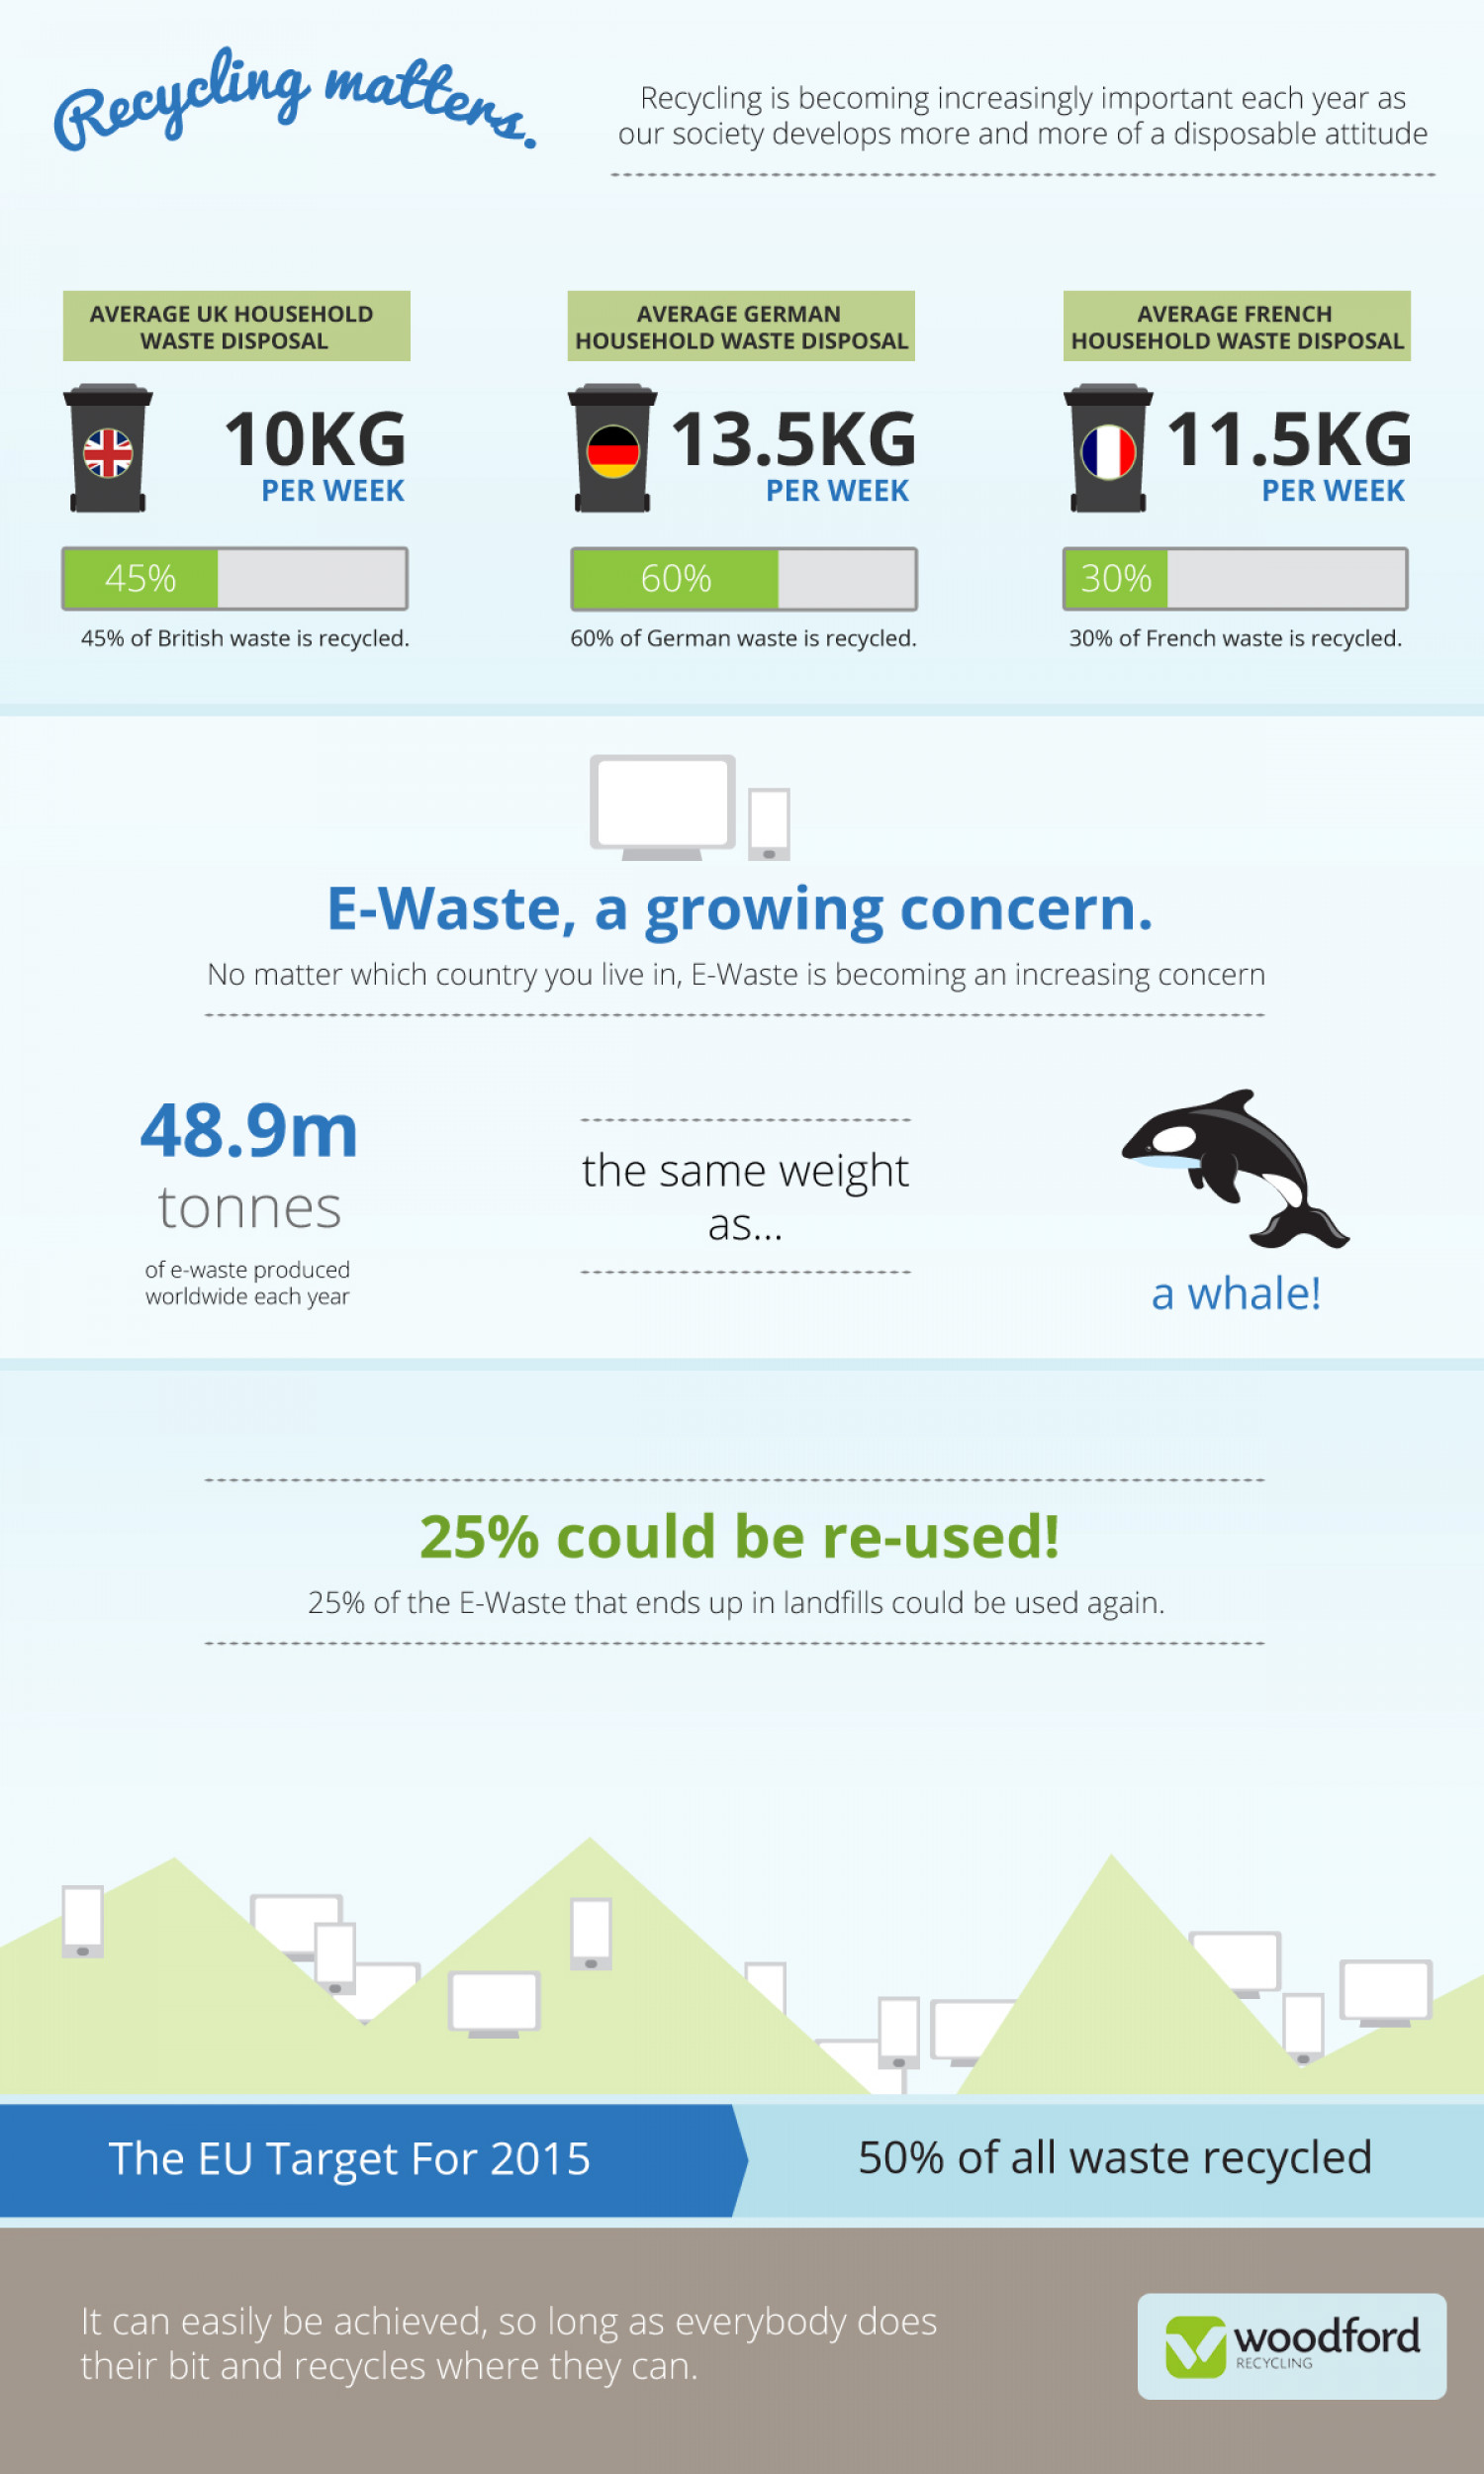 Recycling Matters Infographic